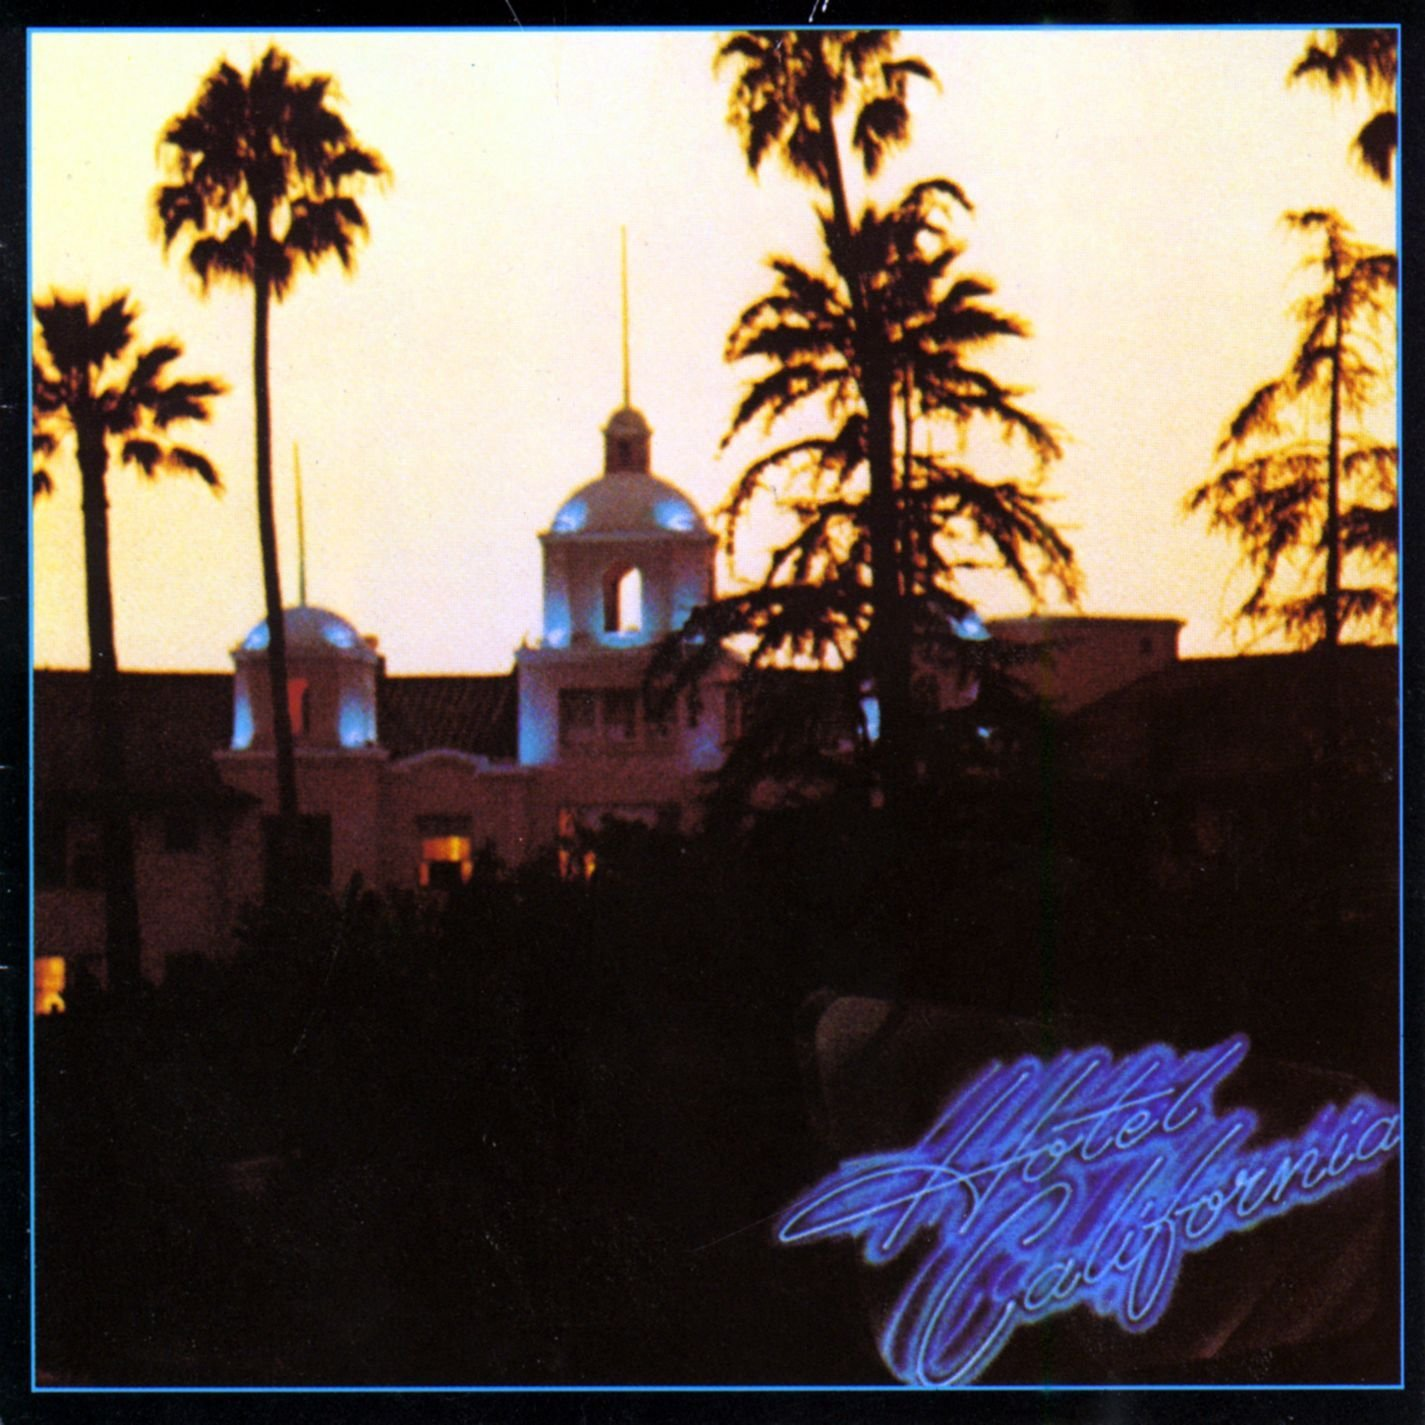 Hotel California (180 Gram Vinyl) by EAGLES